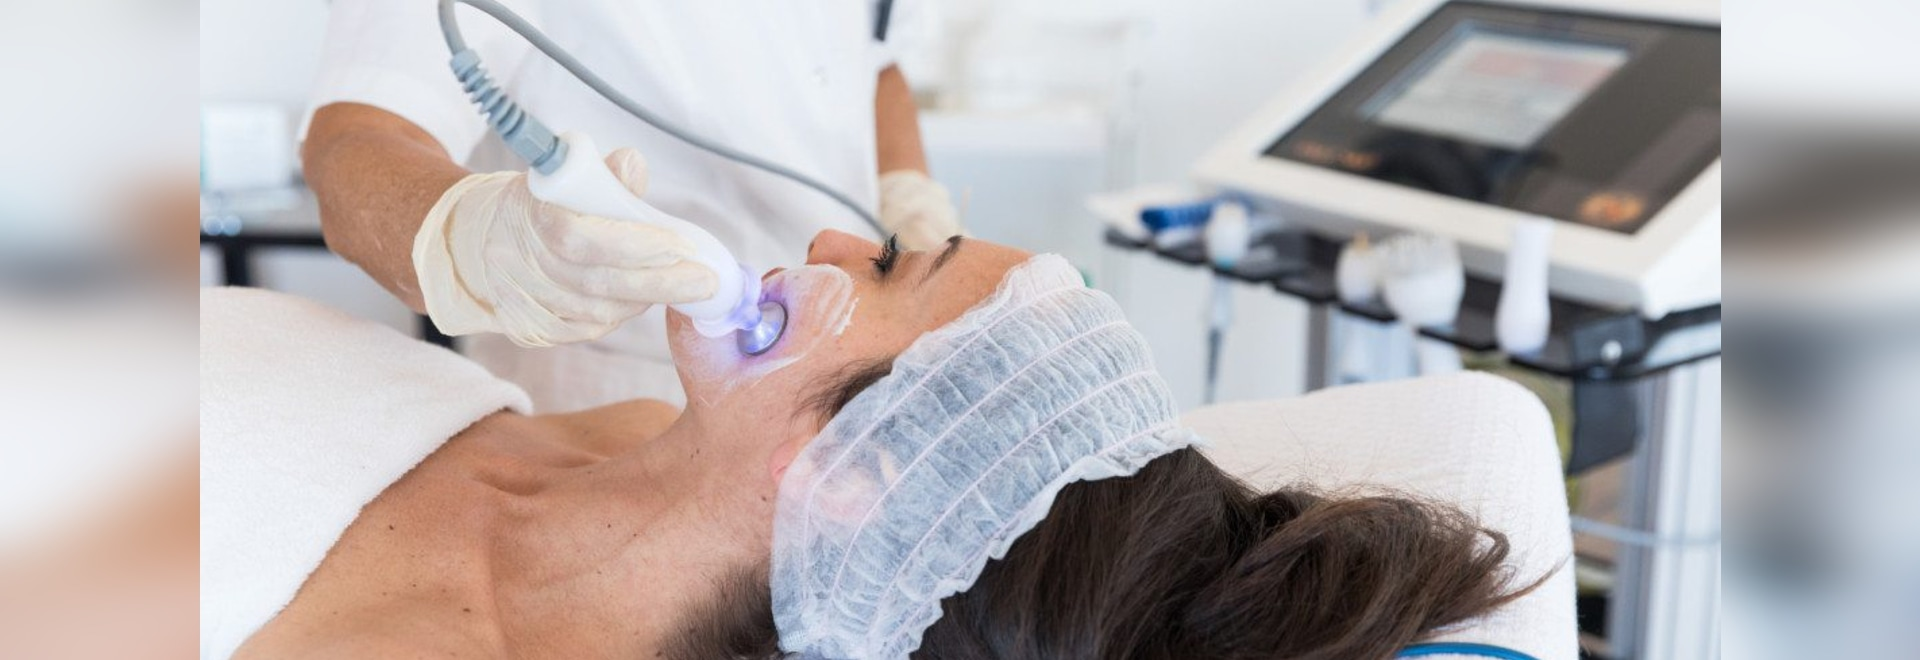 The Radiofrequency in Aesthetic Medicine